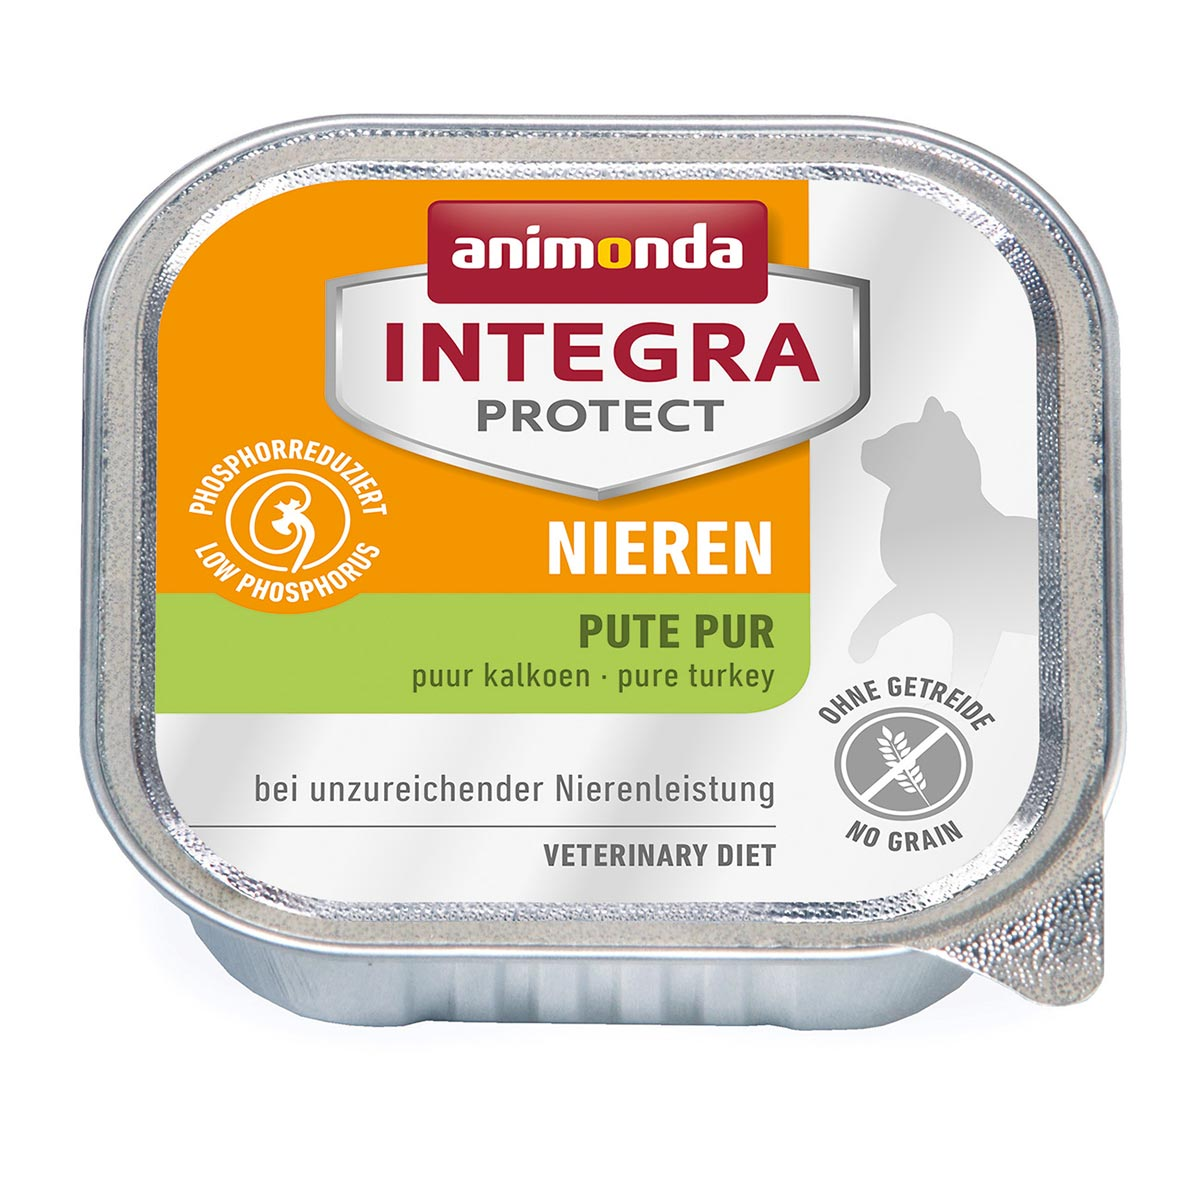 Animonda Integra Protect Nieren Pute pur 32x100g von Animonda